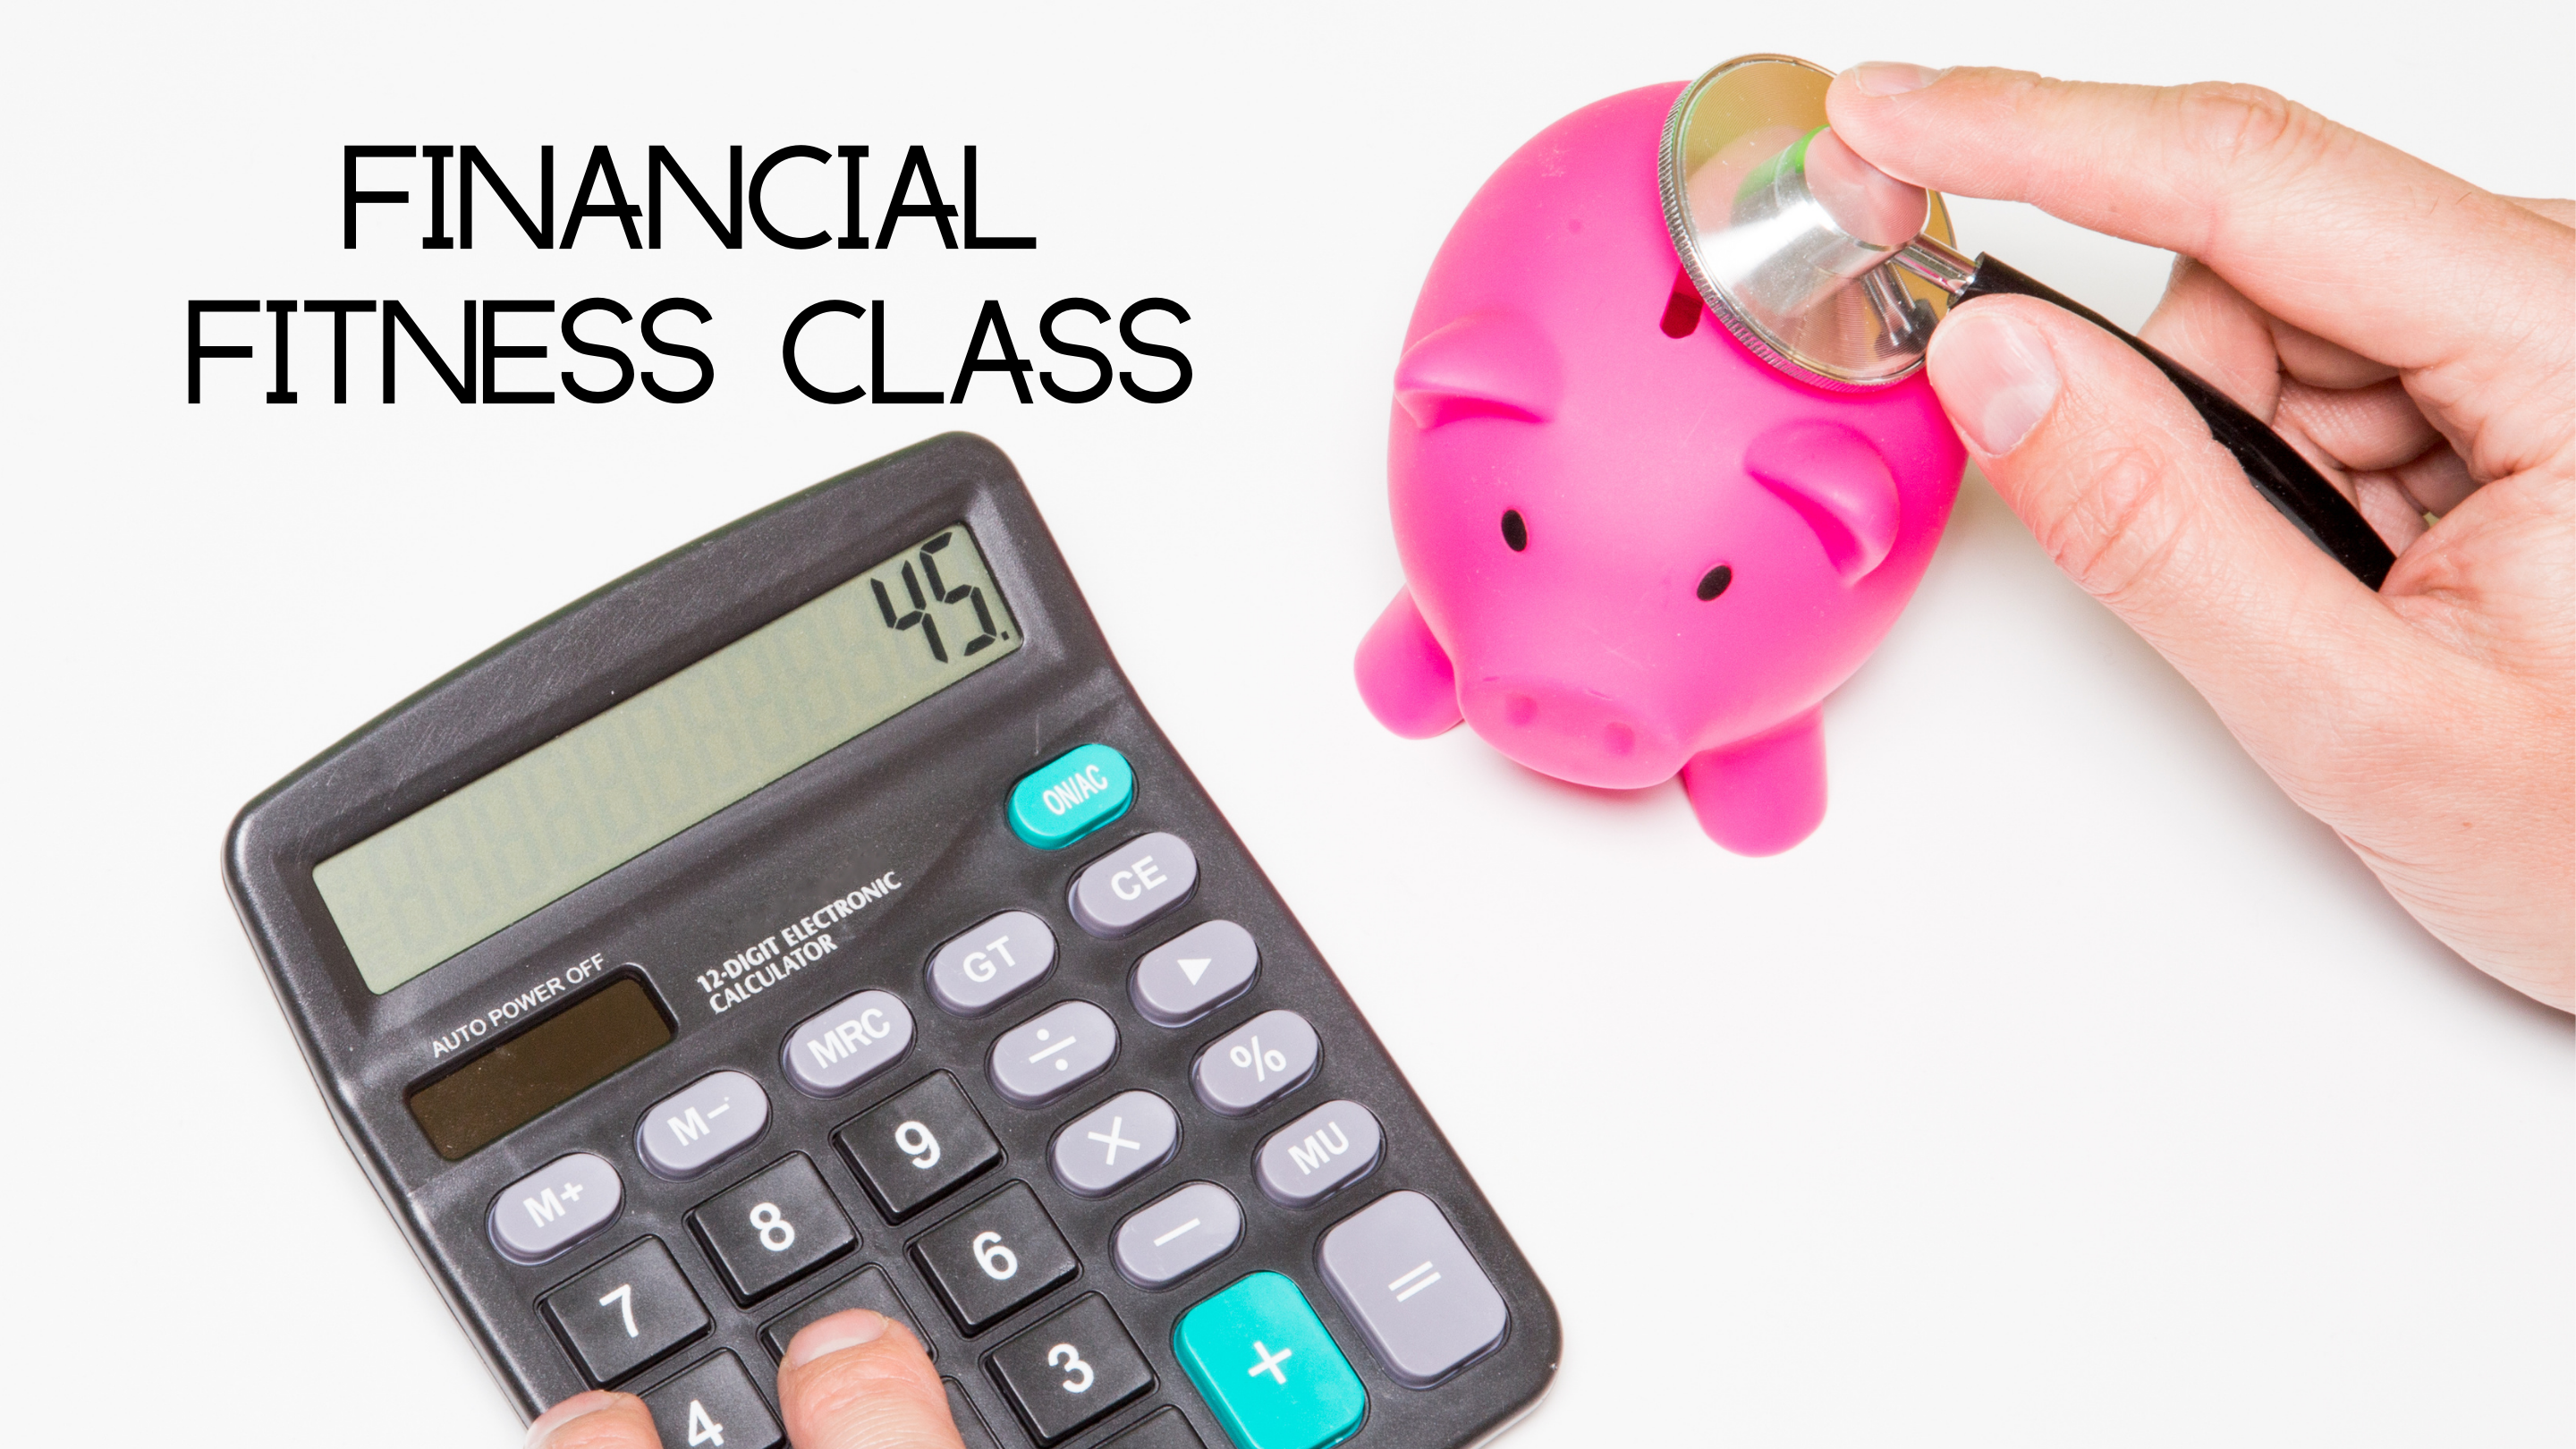 Financial Fitness Class2 image